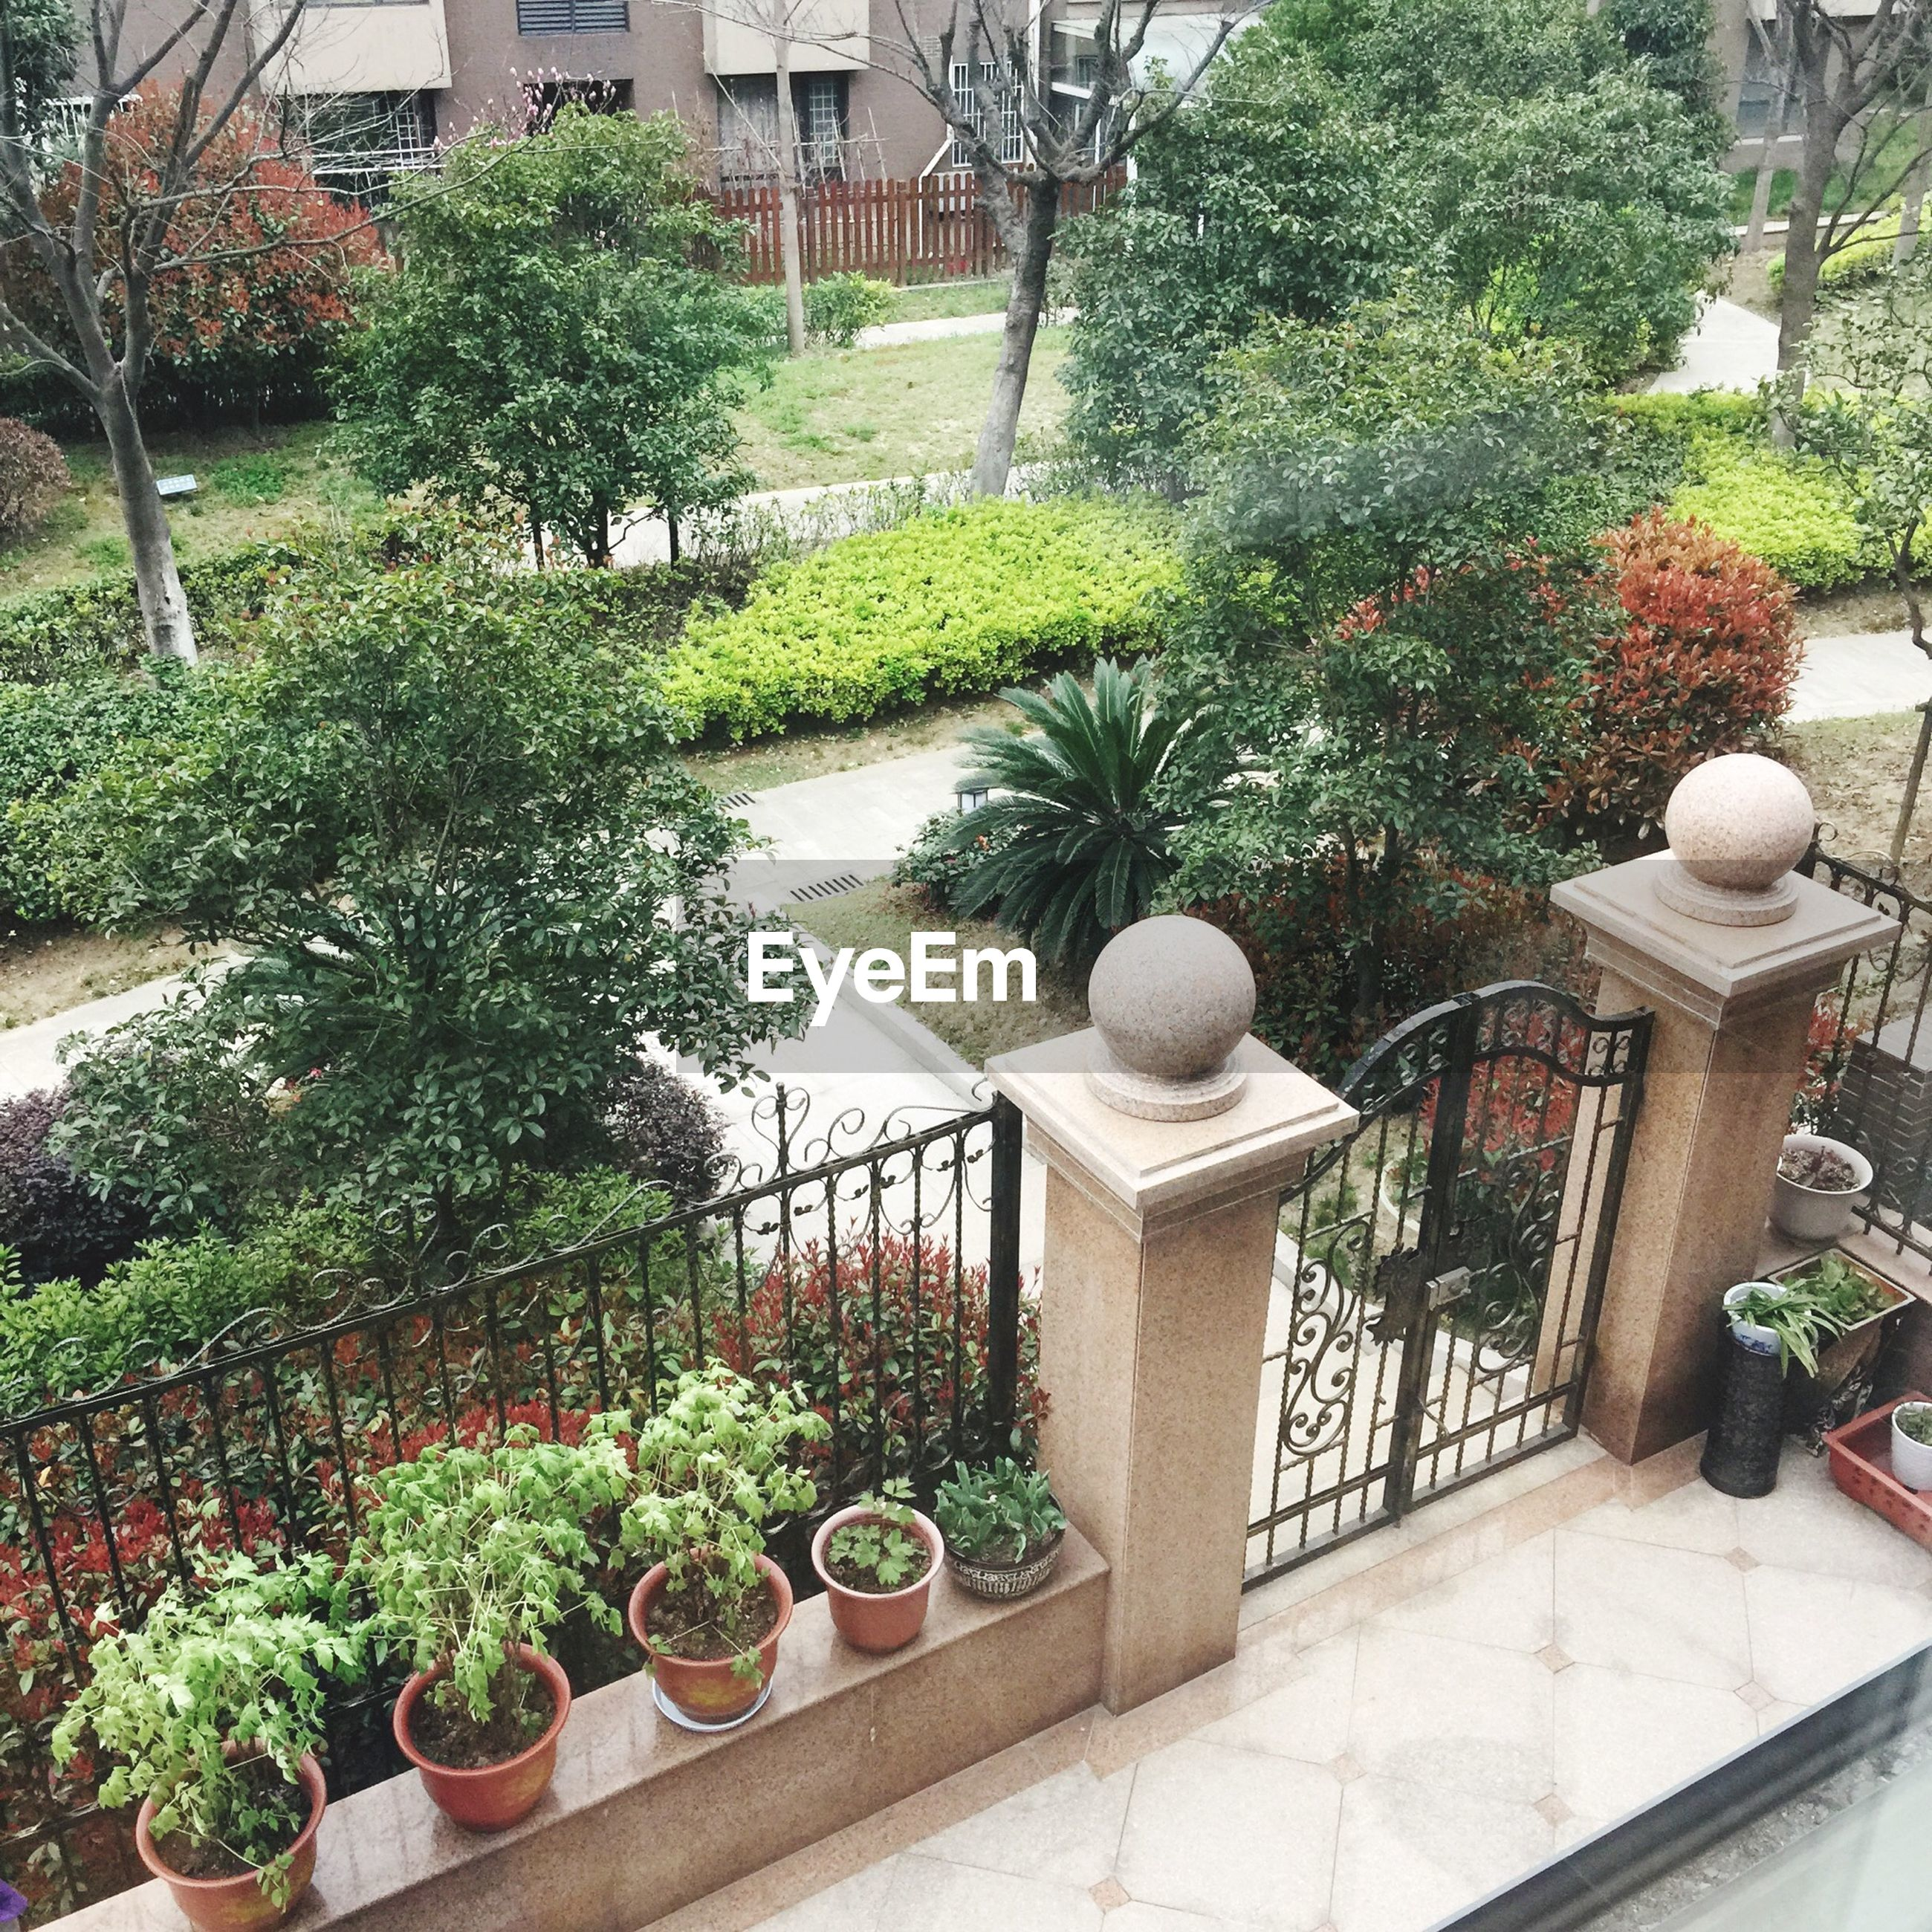 plant, tree, growth, architecture, building exterior, built structure, potted plant, green color, formal garden, railing, city, day, flower pot, hedge, park - man made space, outdoors, steps, flower, leaf, nature